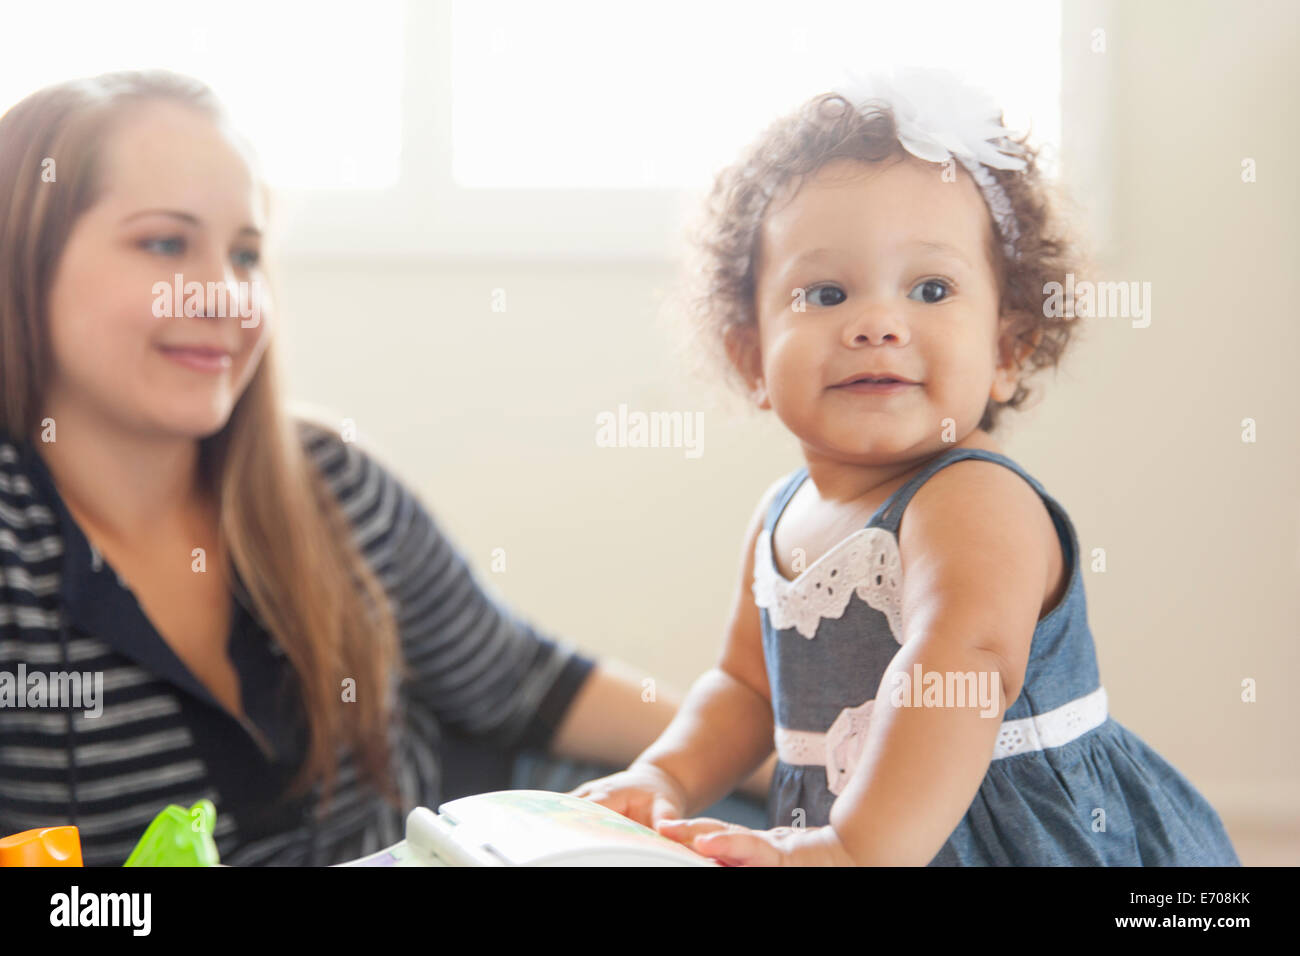 Mother watching young daughter play - Stock Image